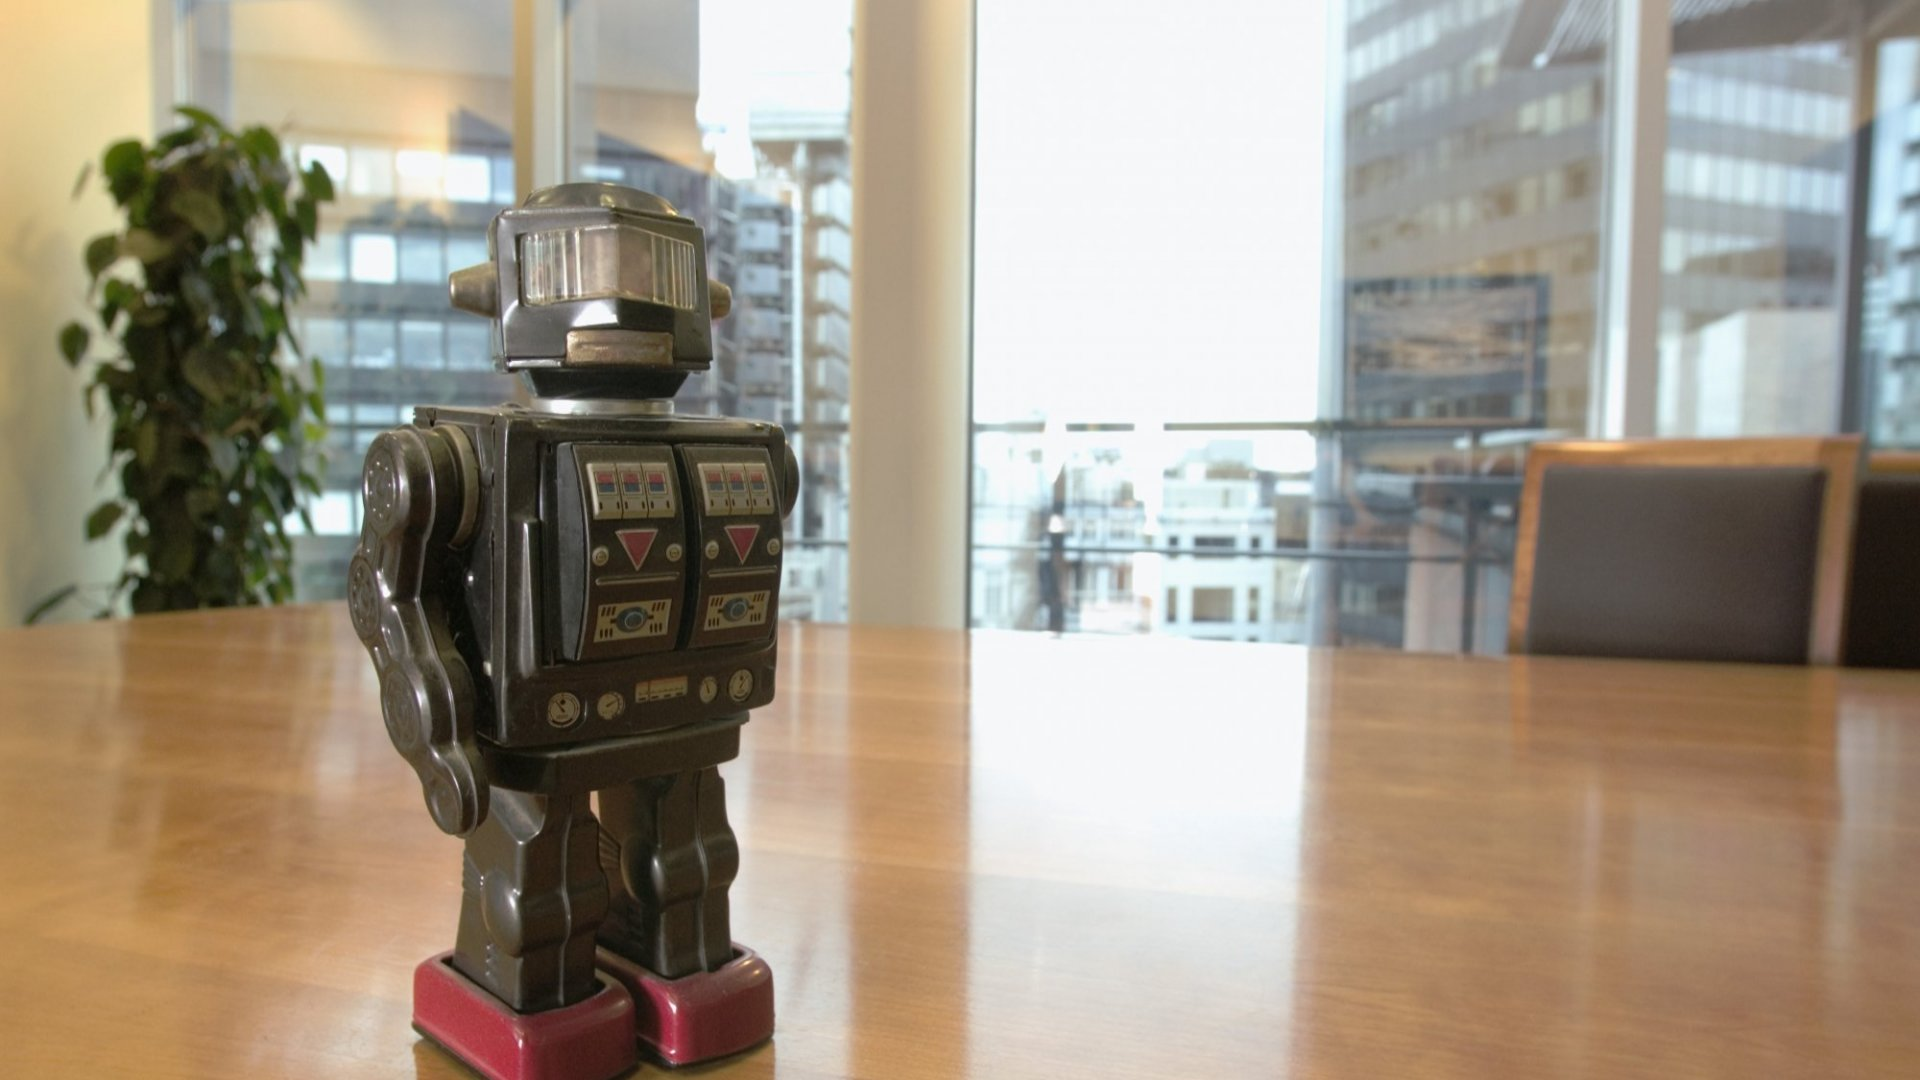 What You Need to Know About A.I. in the Workplace